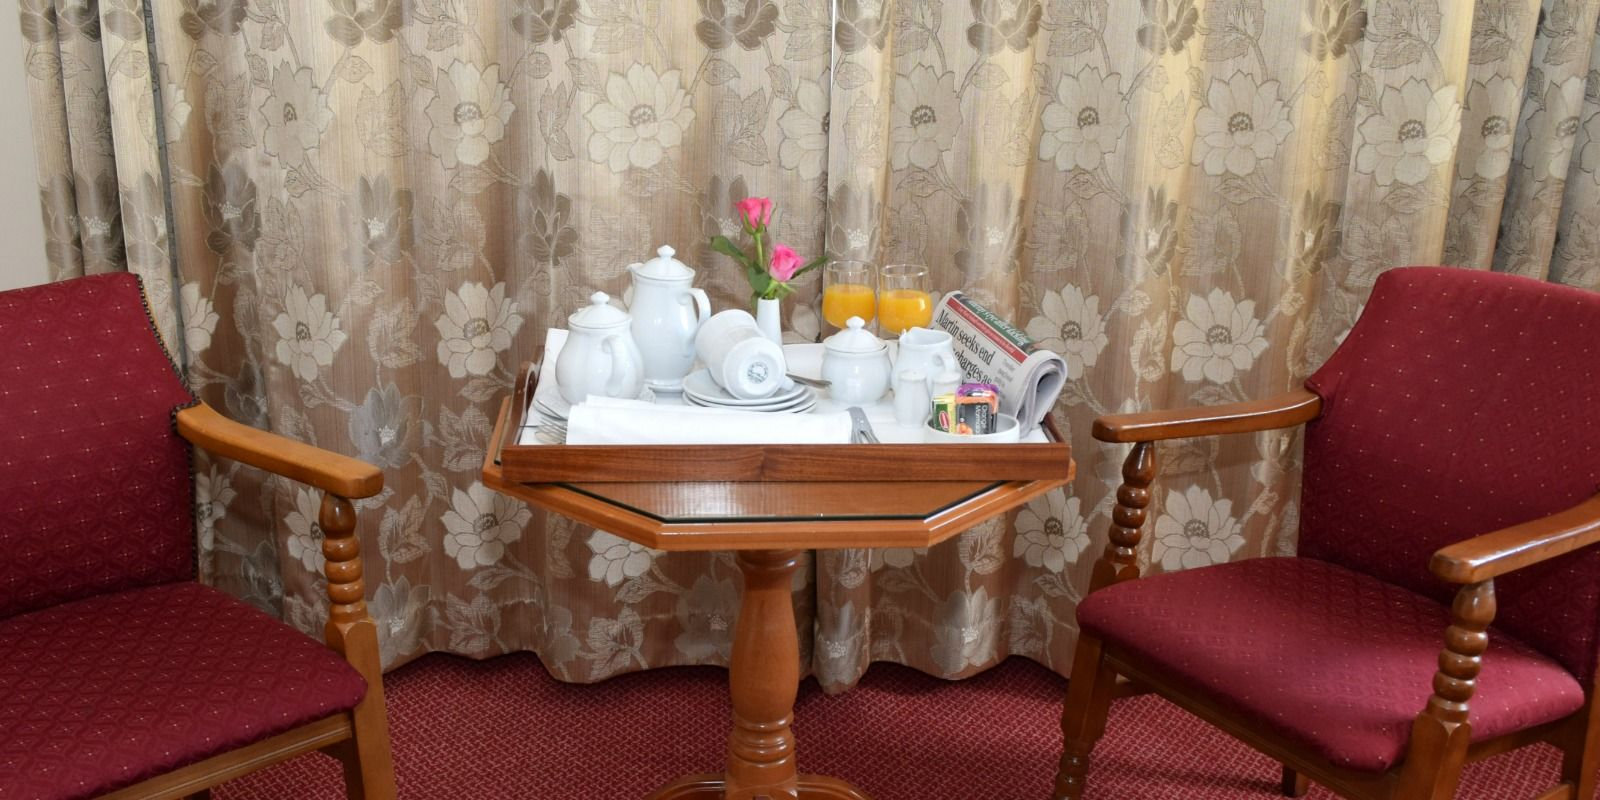 Room Service at the Rhu Glenn Hotel